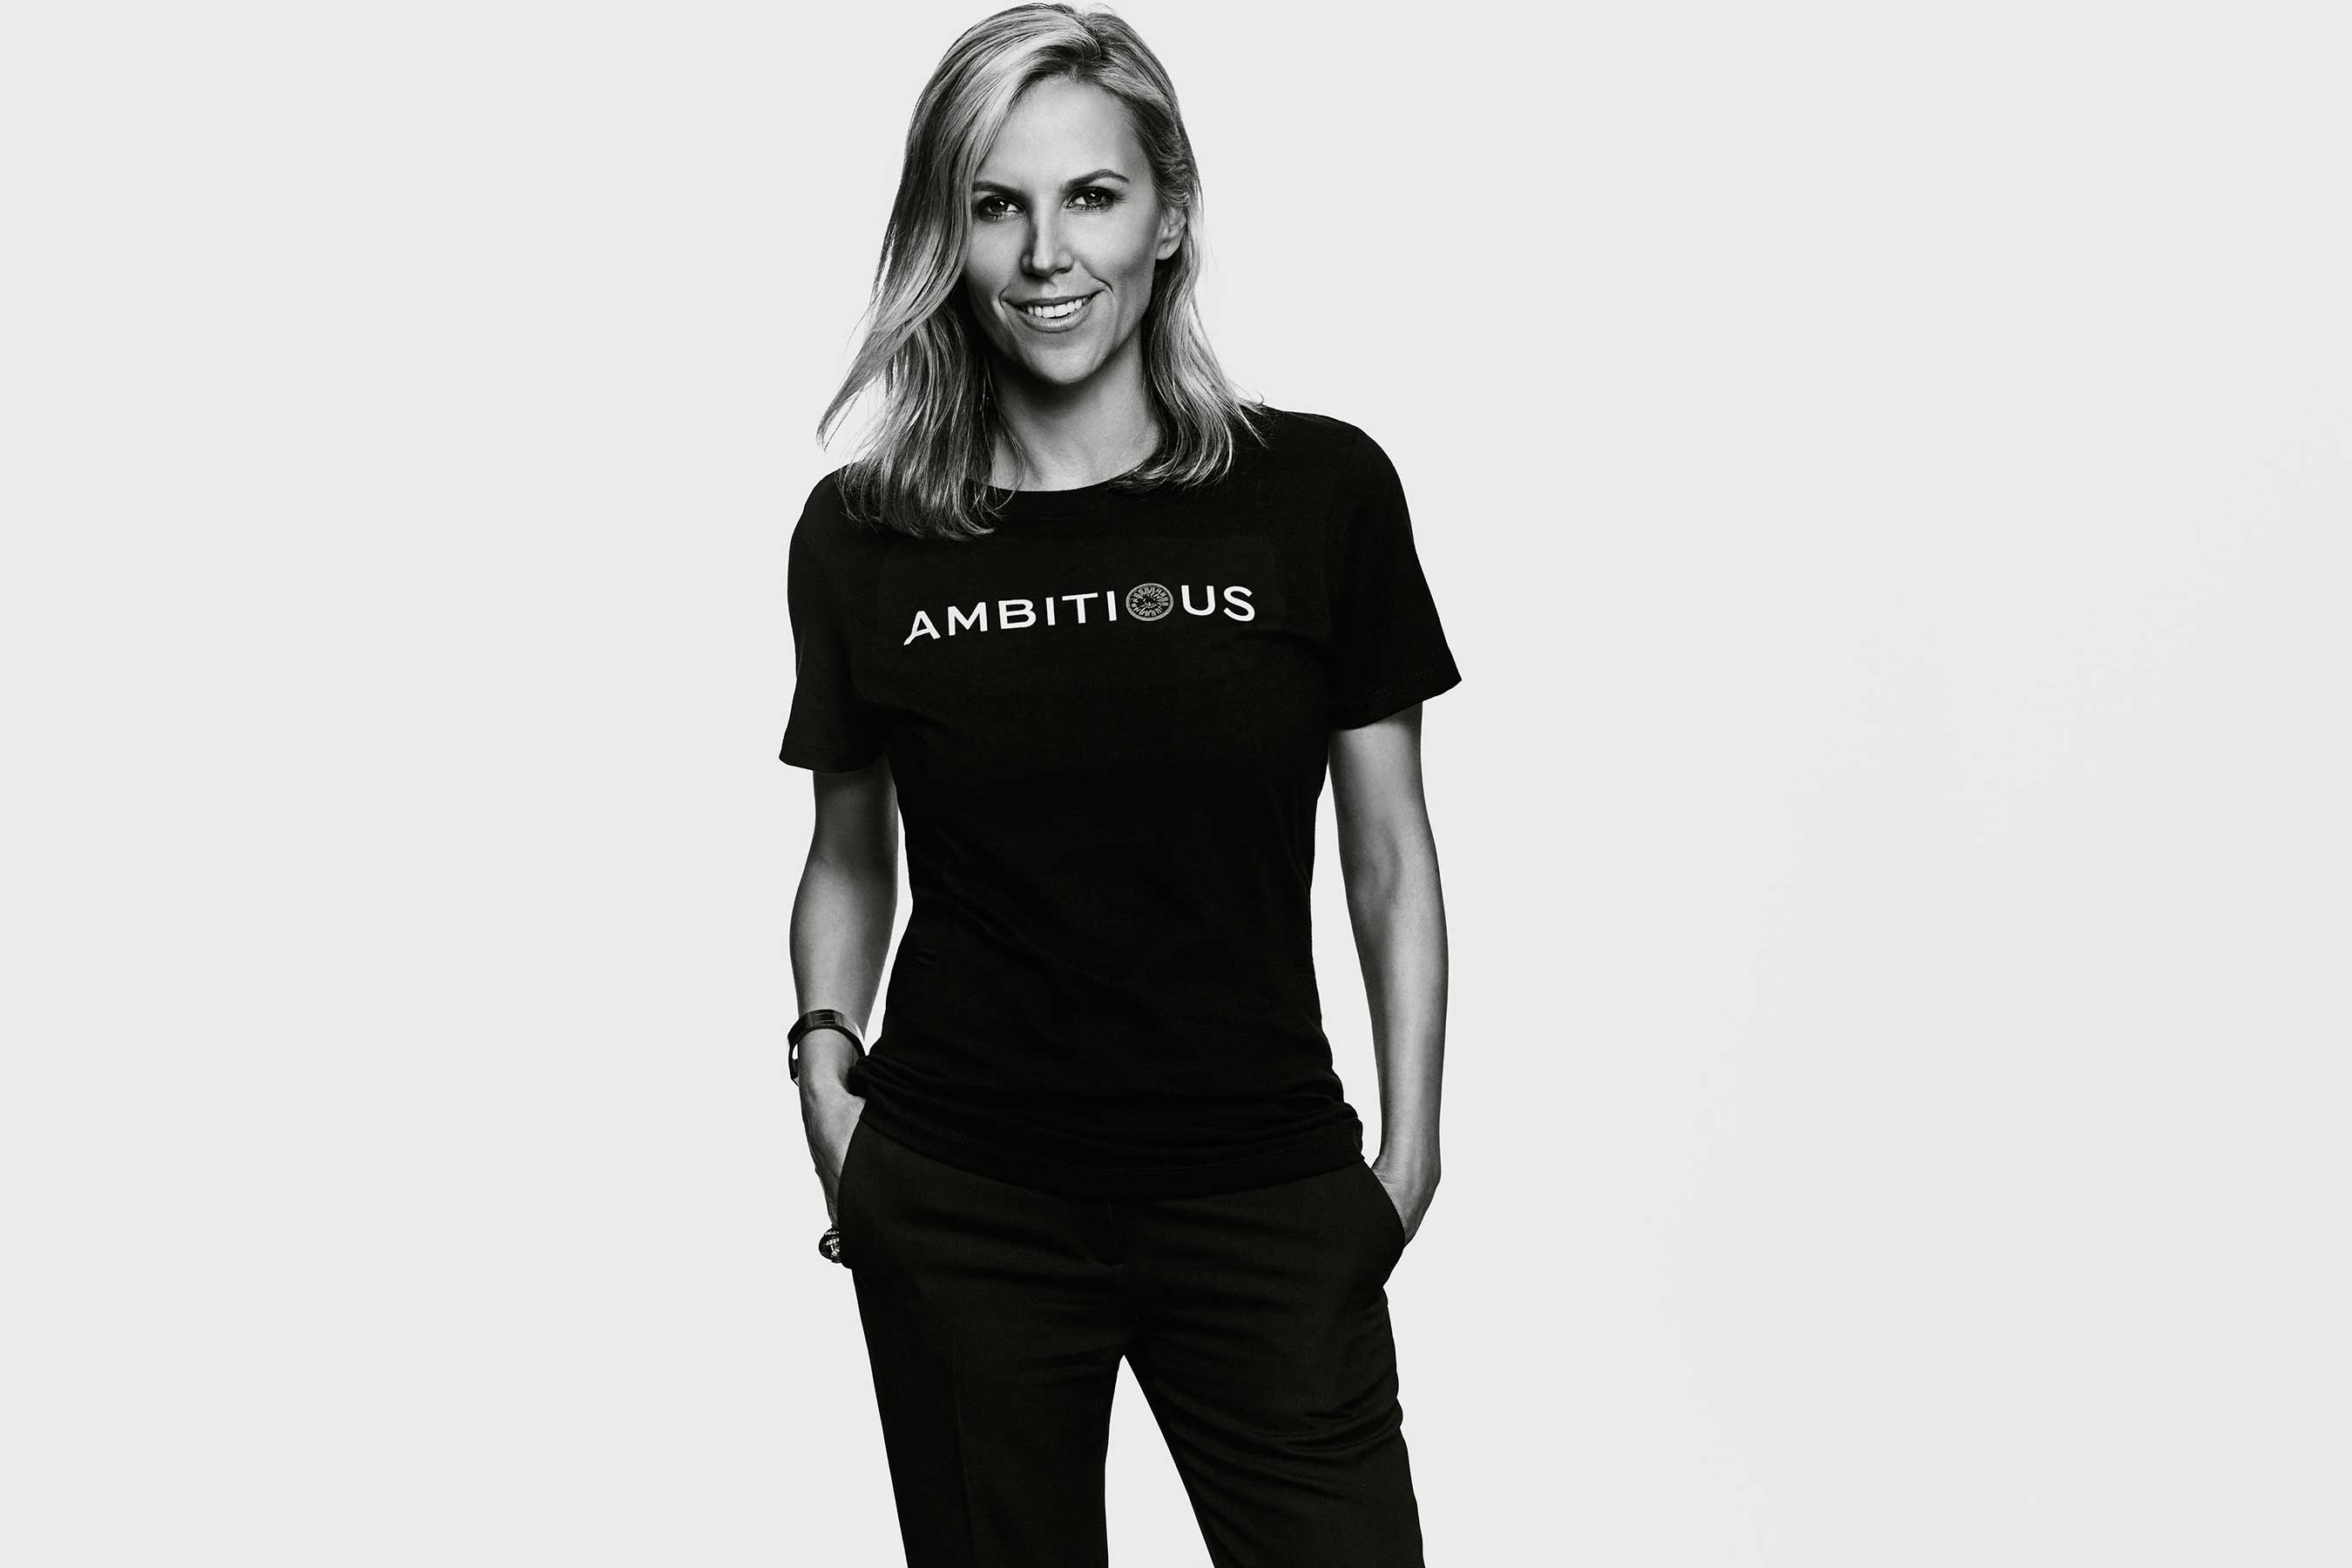 Tory Burch, founder of the Tory Burch Foundation, launched the #EmbraceAmbition campaign on International Women's Day to encourage women to embrace ambition.